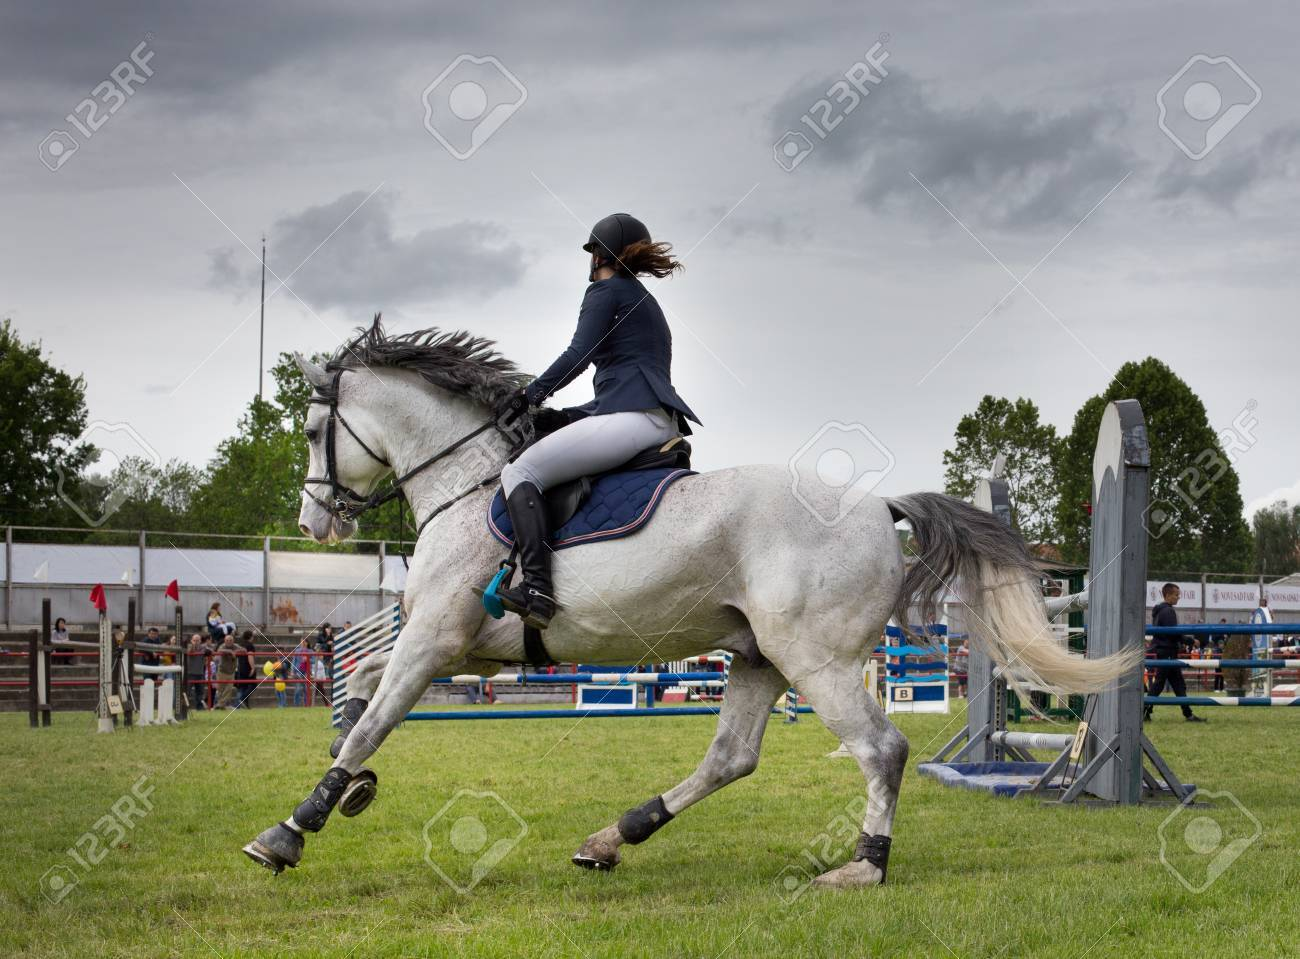 Female Equestrian On White Horse On Jumping Show Stock Photo Picture And Royalty Free Image Image 57945828